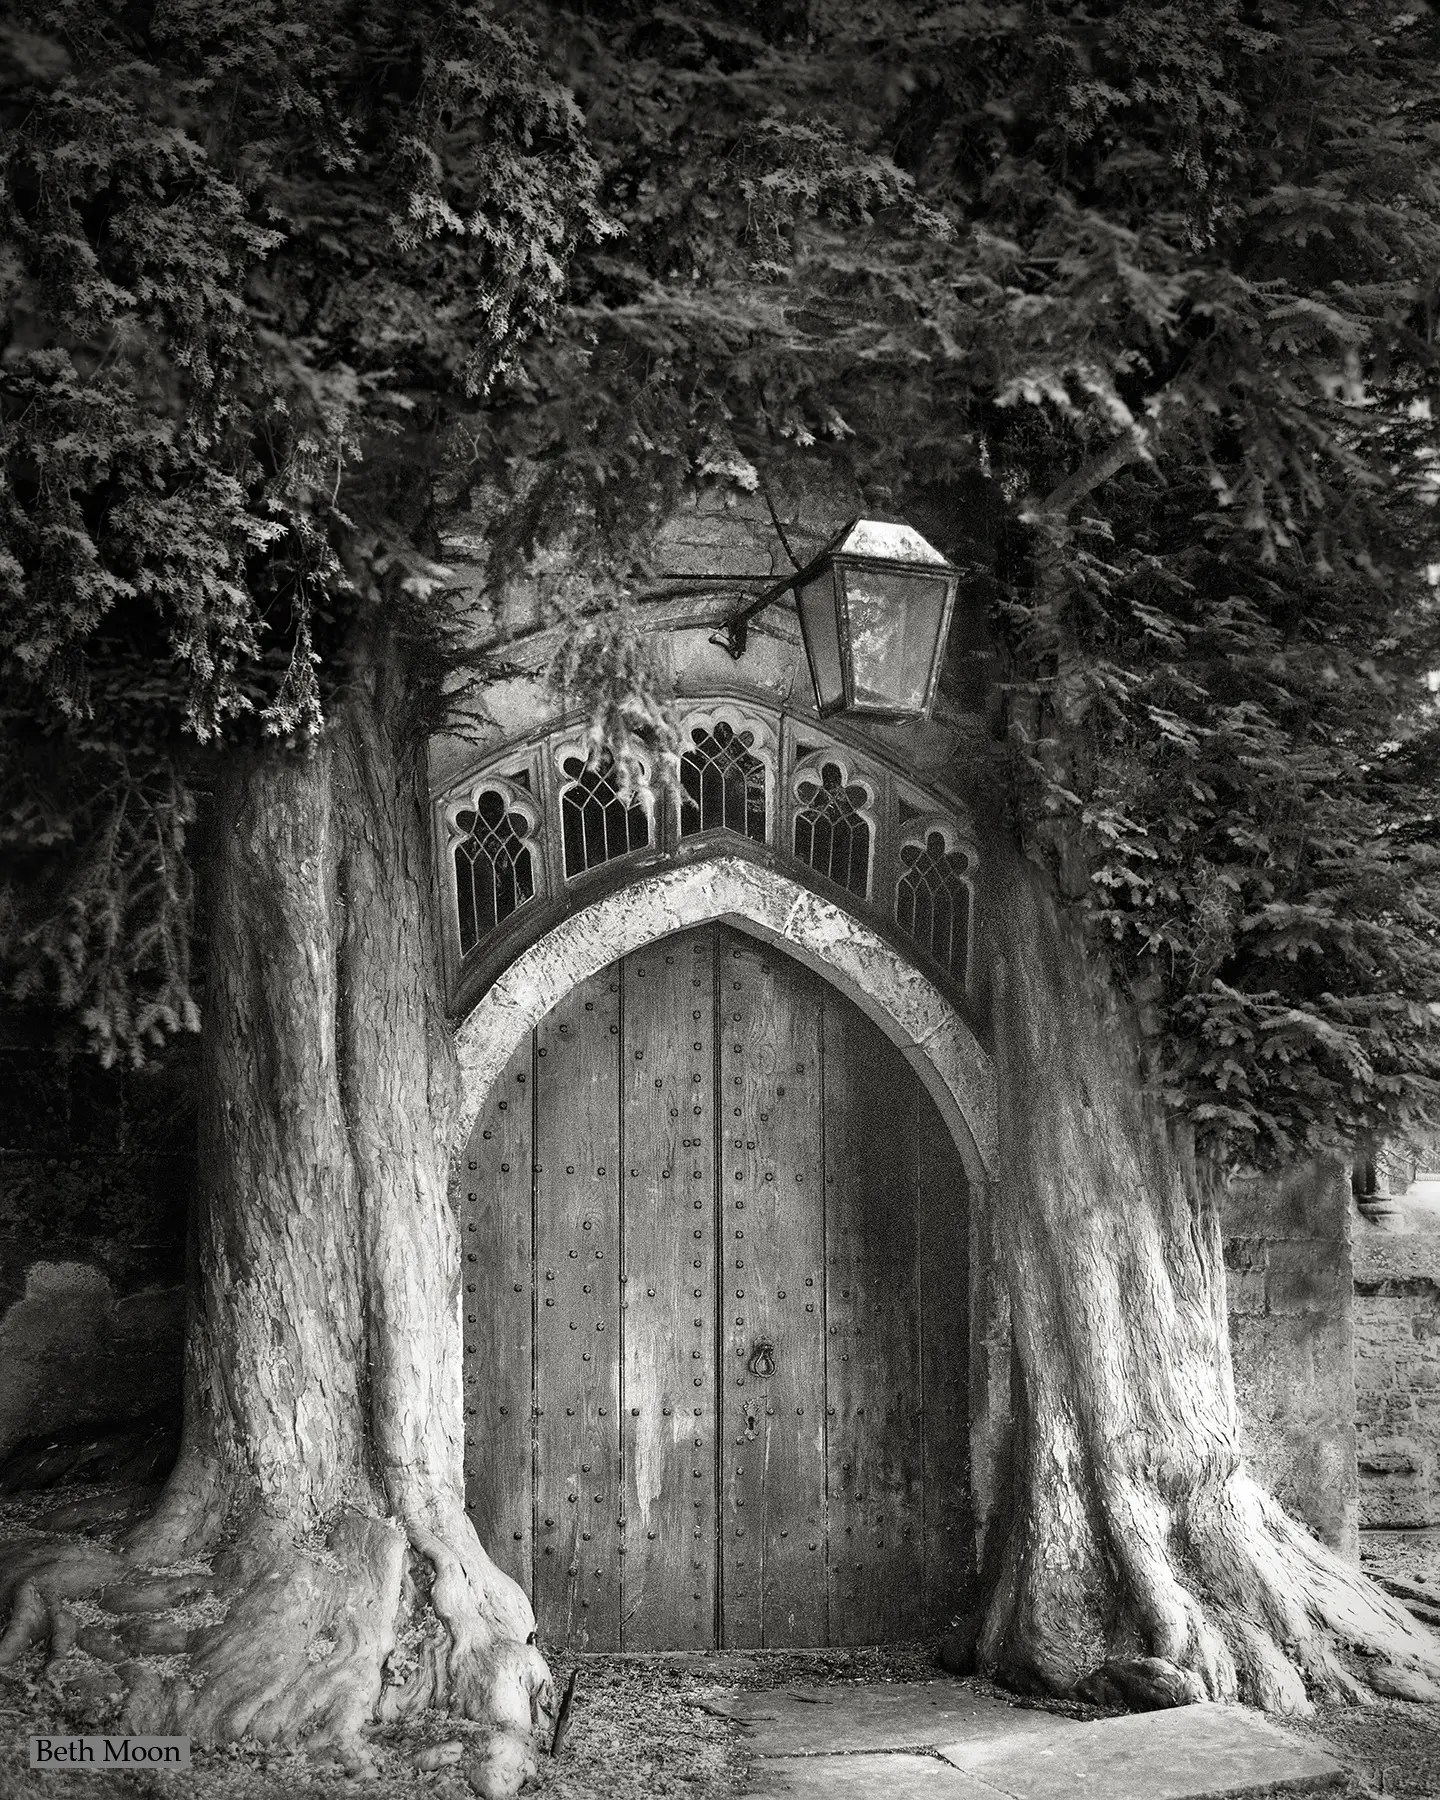 These two Yew Trees, which flank the door to the Church of St. Edward in Stow-on-the-Wold, England, planted sometime in the 18th century, were probably survivors of an avenue of trees that led to the door of the church. They now appear to grow from the building itself.